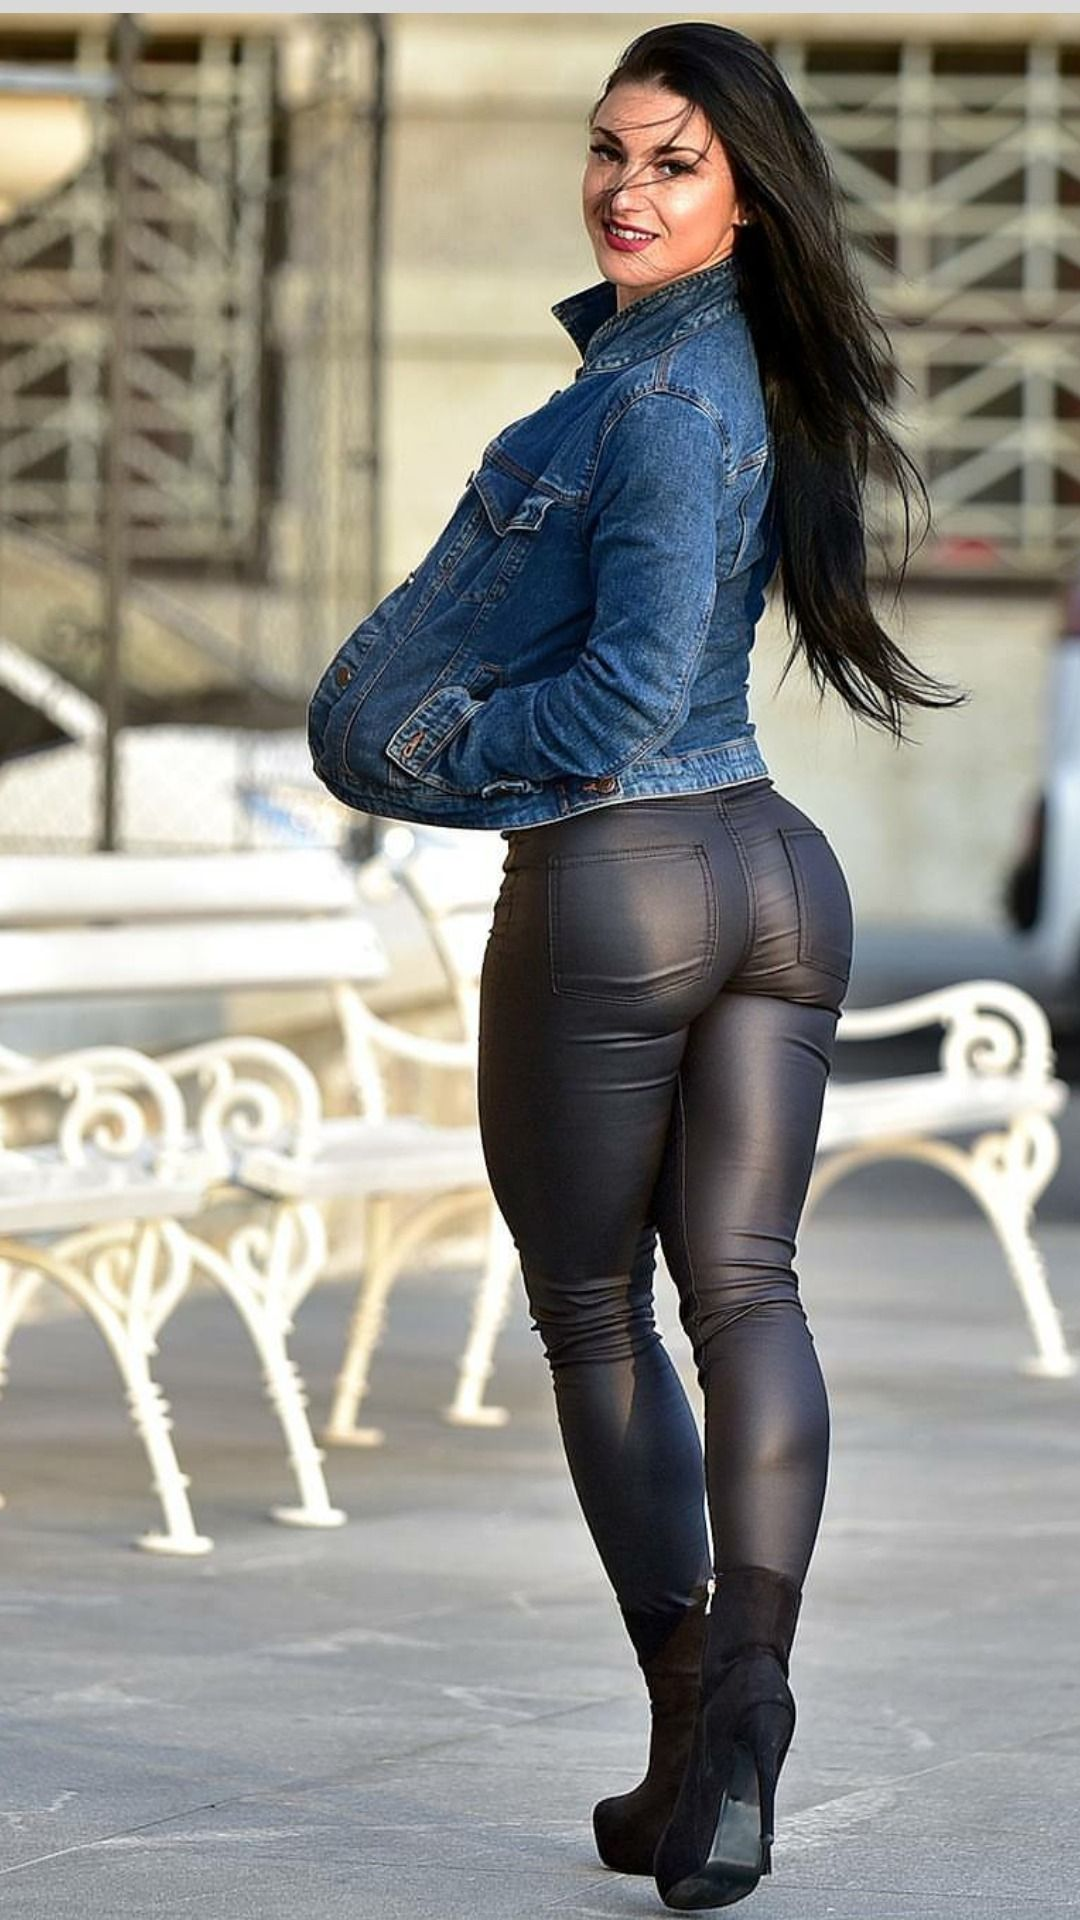 Women tight jeans and pantyhose